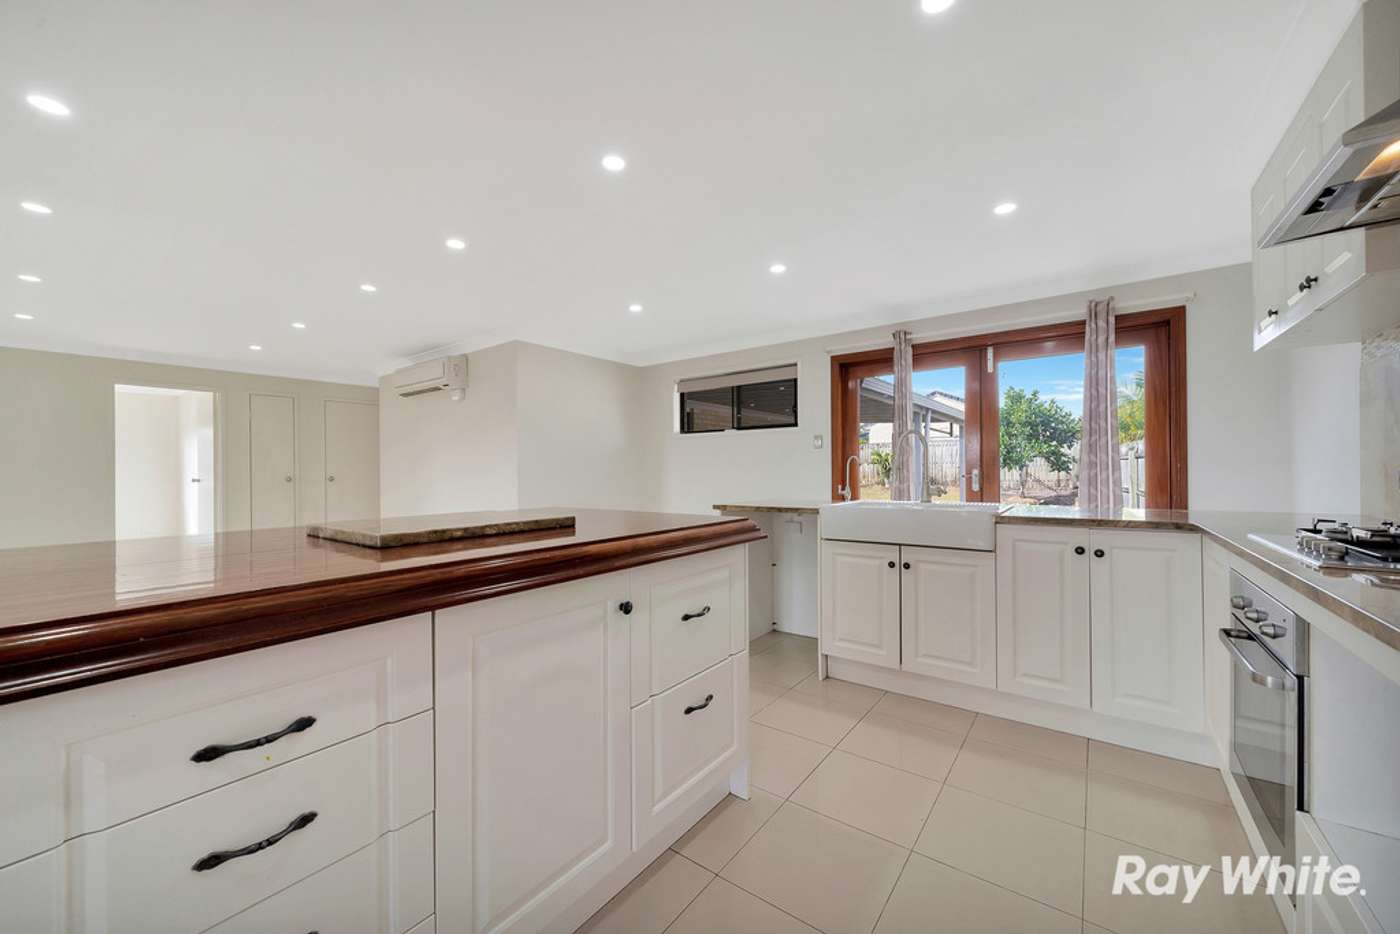 Fifth view of Homely house listing, 4 Felix Court, Crestmead QLD 4132